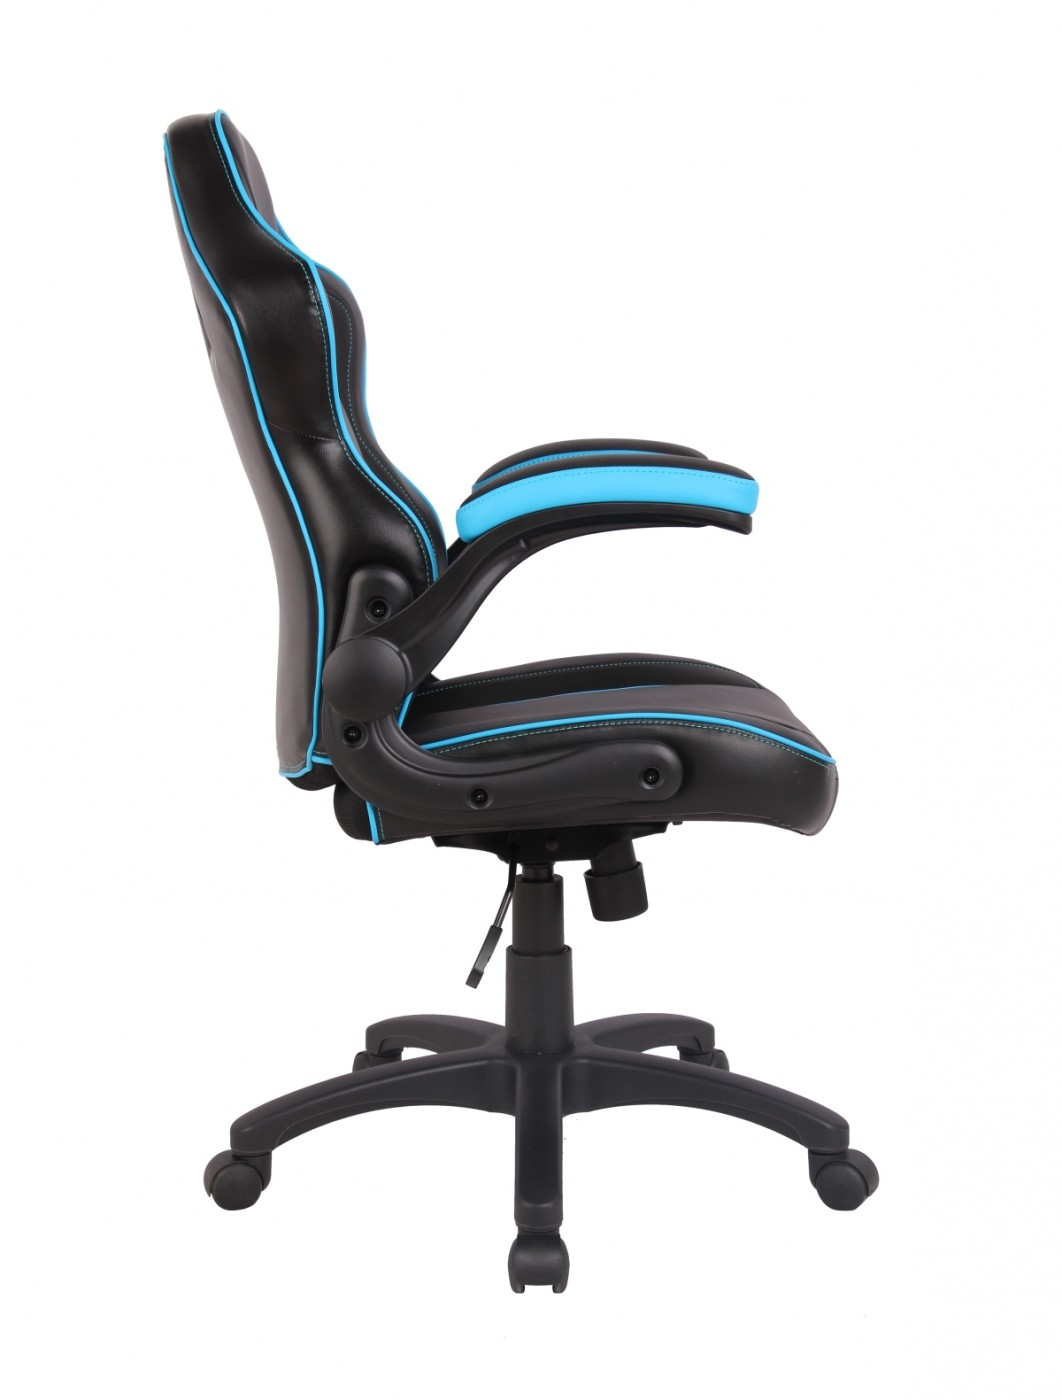 supreme gaming seat computer black swivel office desk raygar racing chair